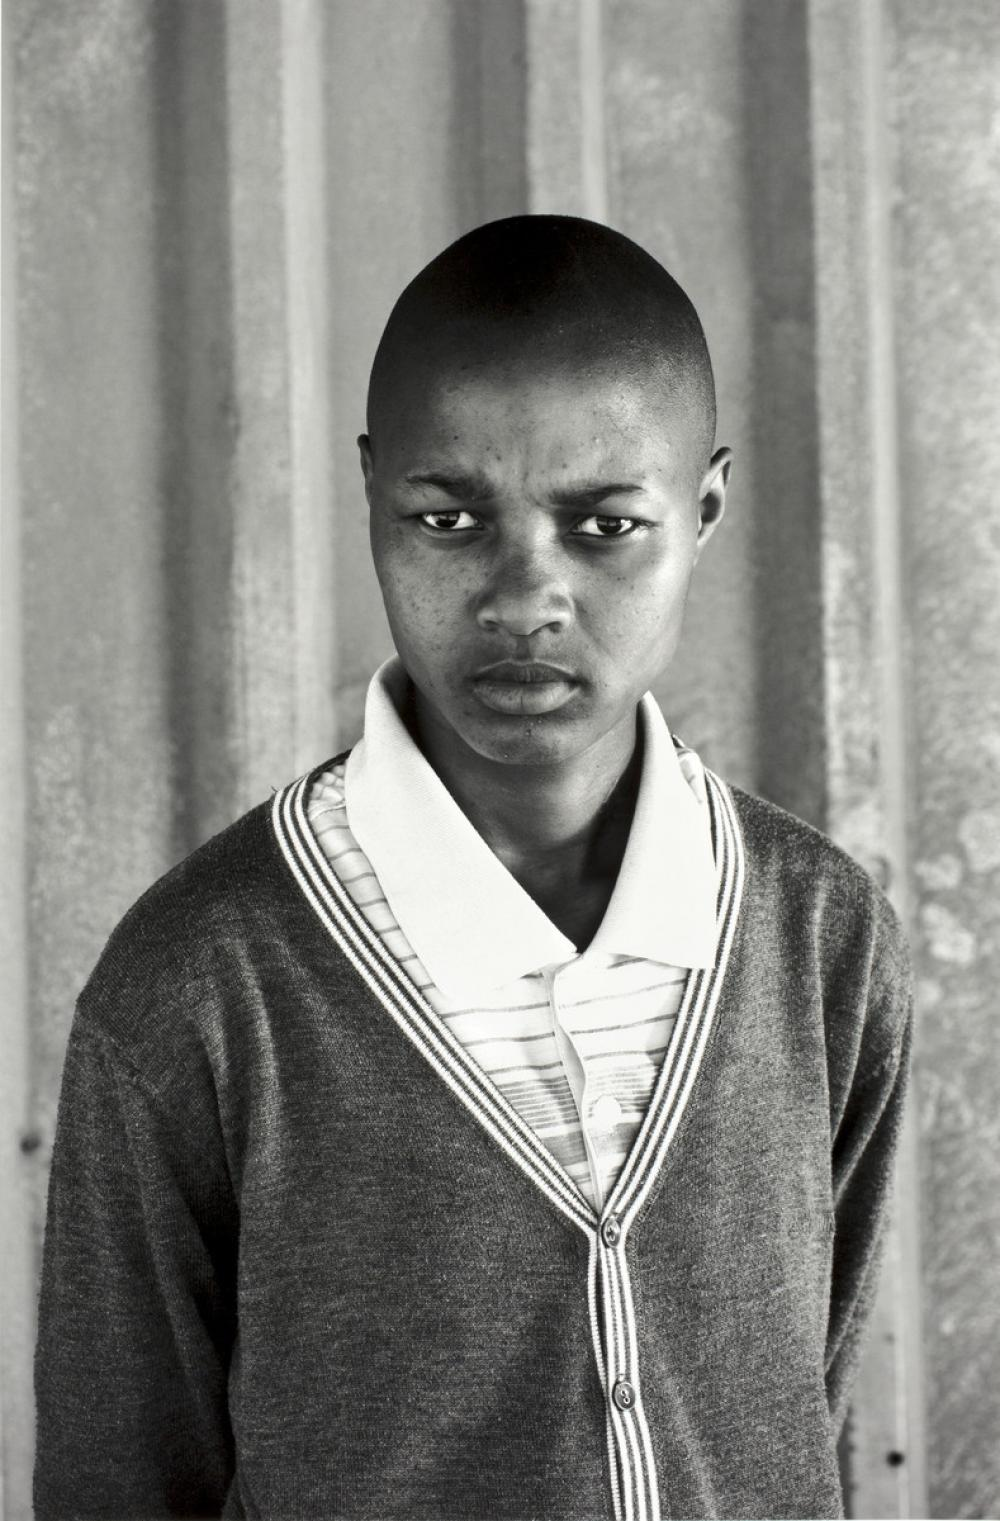 Muholi, Zanele, Lumka Stemela, Nyanga East, Cape Town, from the series Faces & Phases